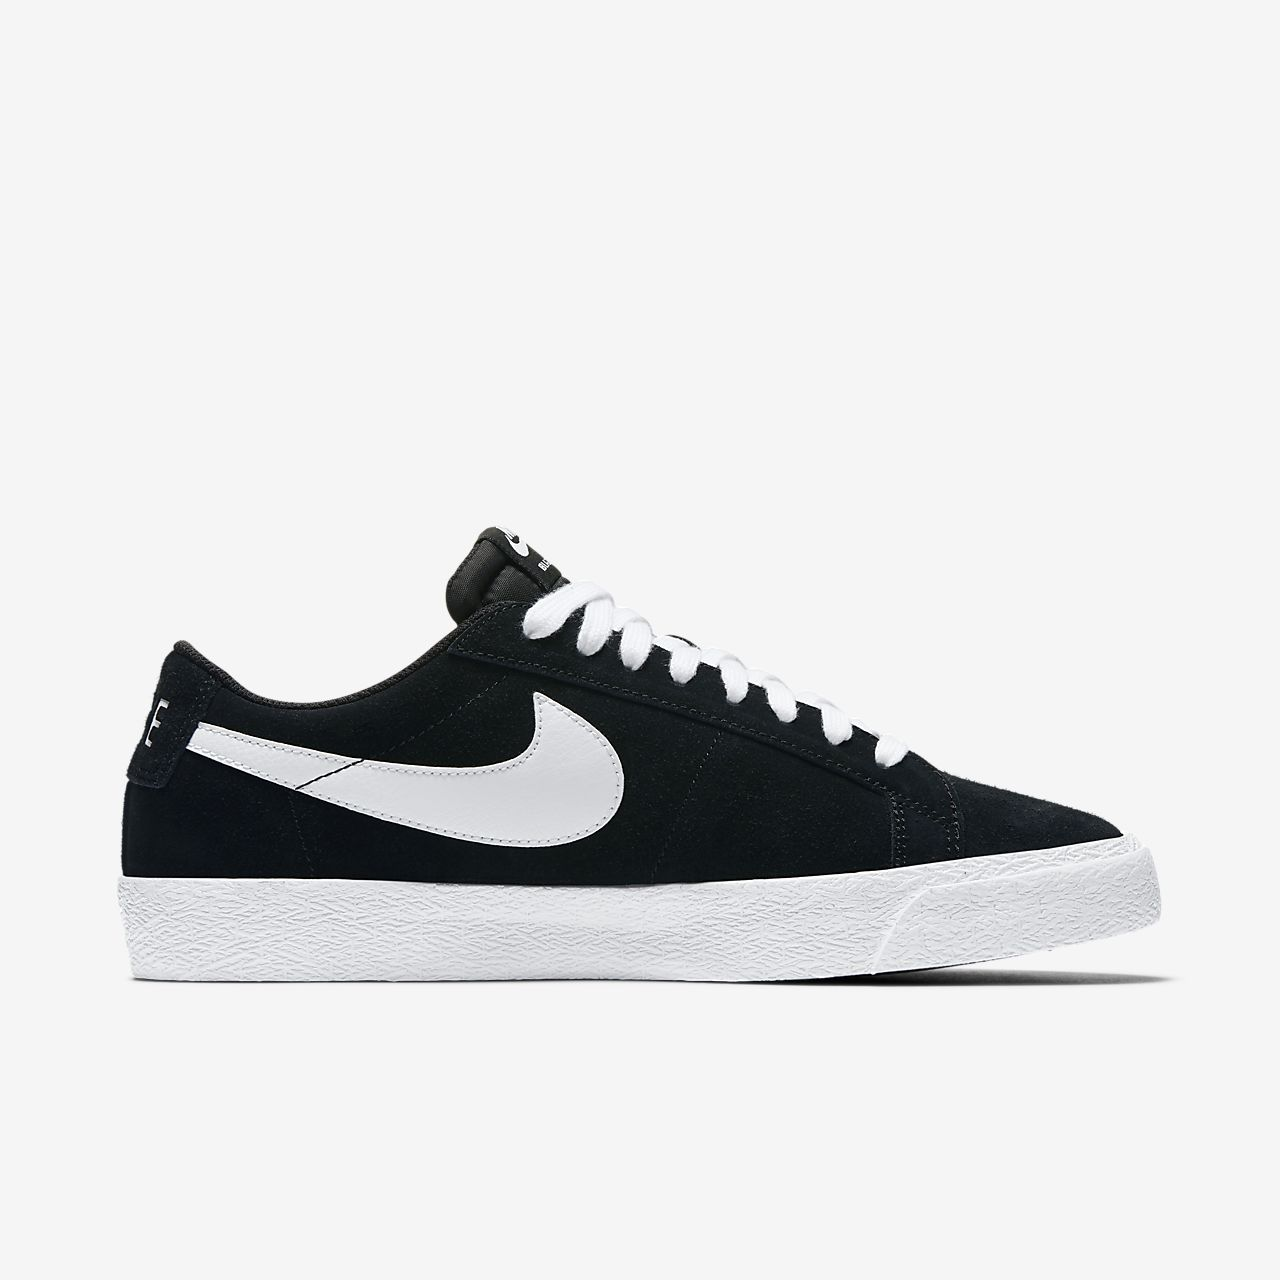 28eaada5f63 Nike SB Blazer Zoom Low Men s Skateboarding Shoe. Nike.com